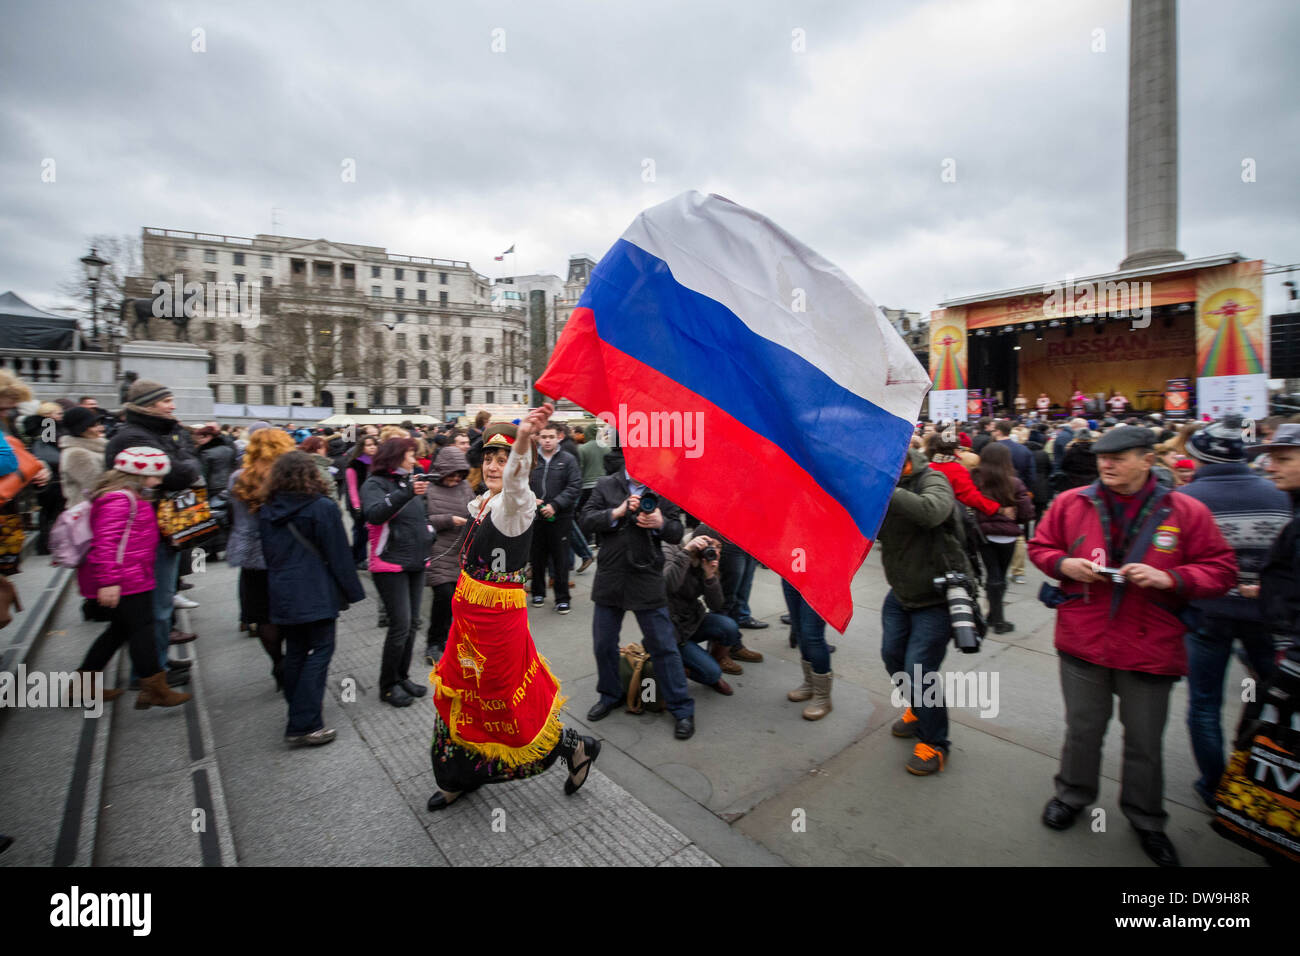 Spectator with flag of Russia in the crowd for Russian Maslenitsa Festival 2014, Trafalgar Square, London, UK. - Stock Image